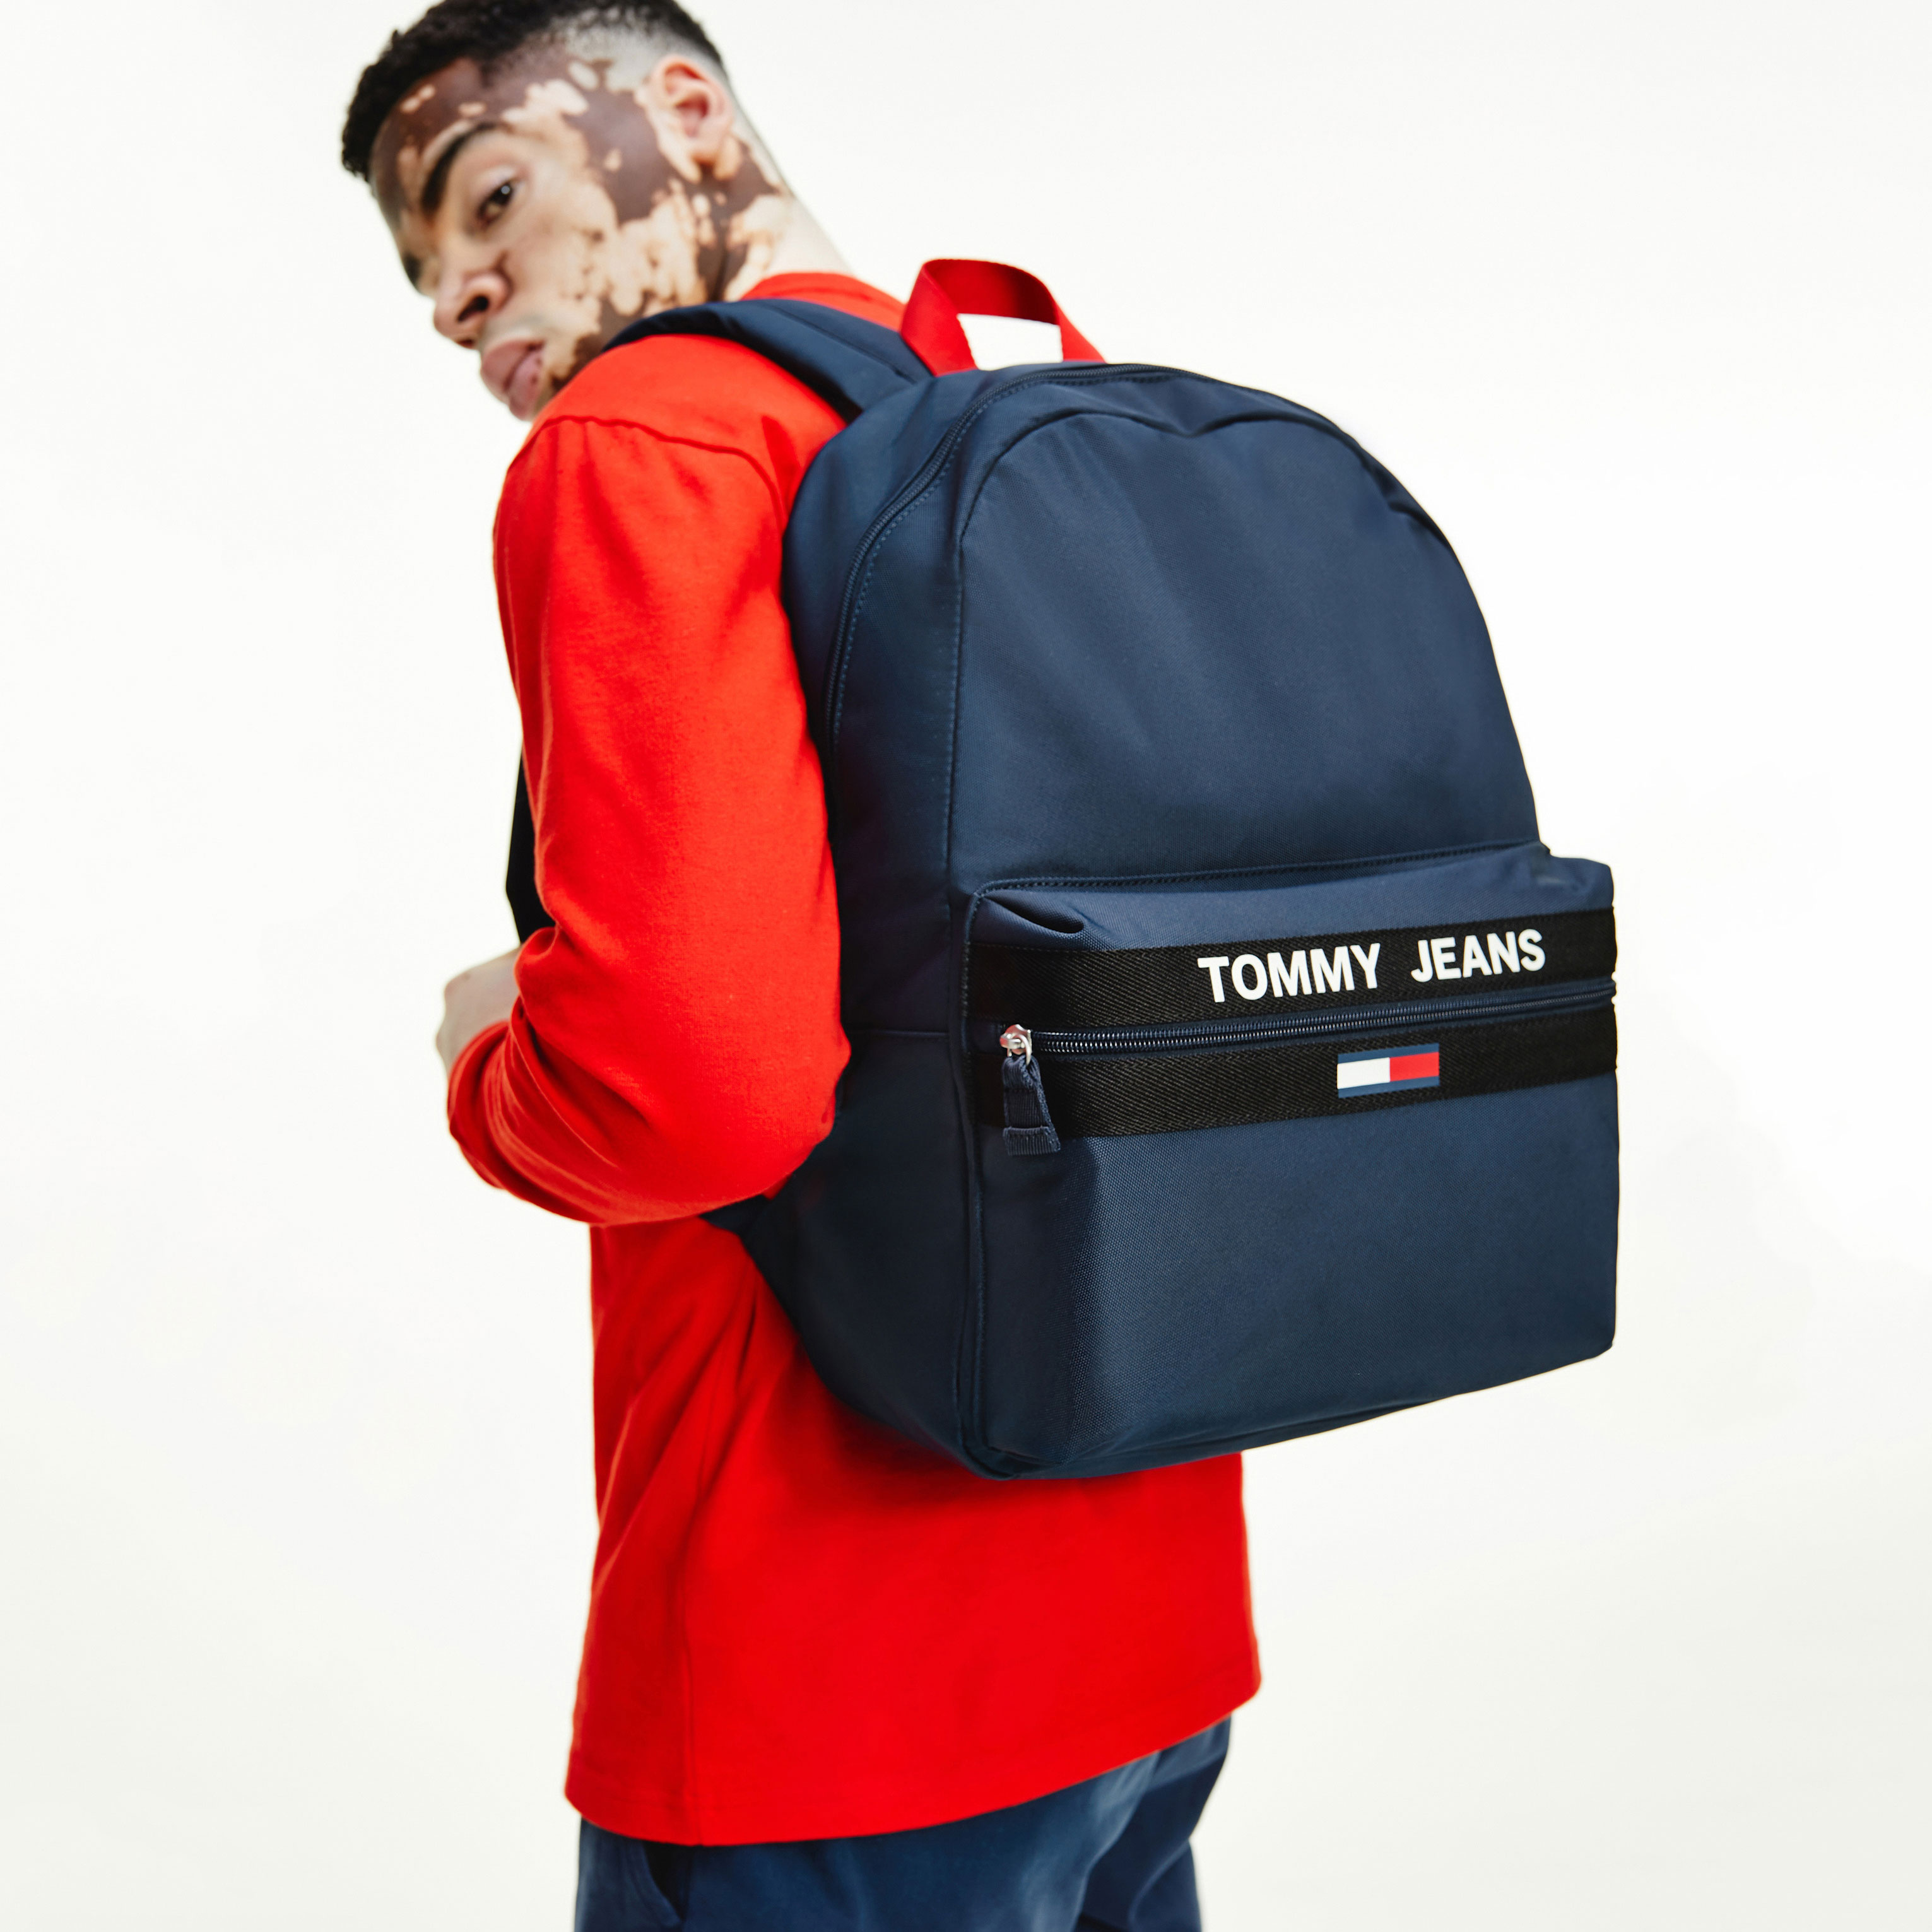 TOMMY JEANS Marroquinería Mochila Tjm Essential Backpack AM0AM07766-C87